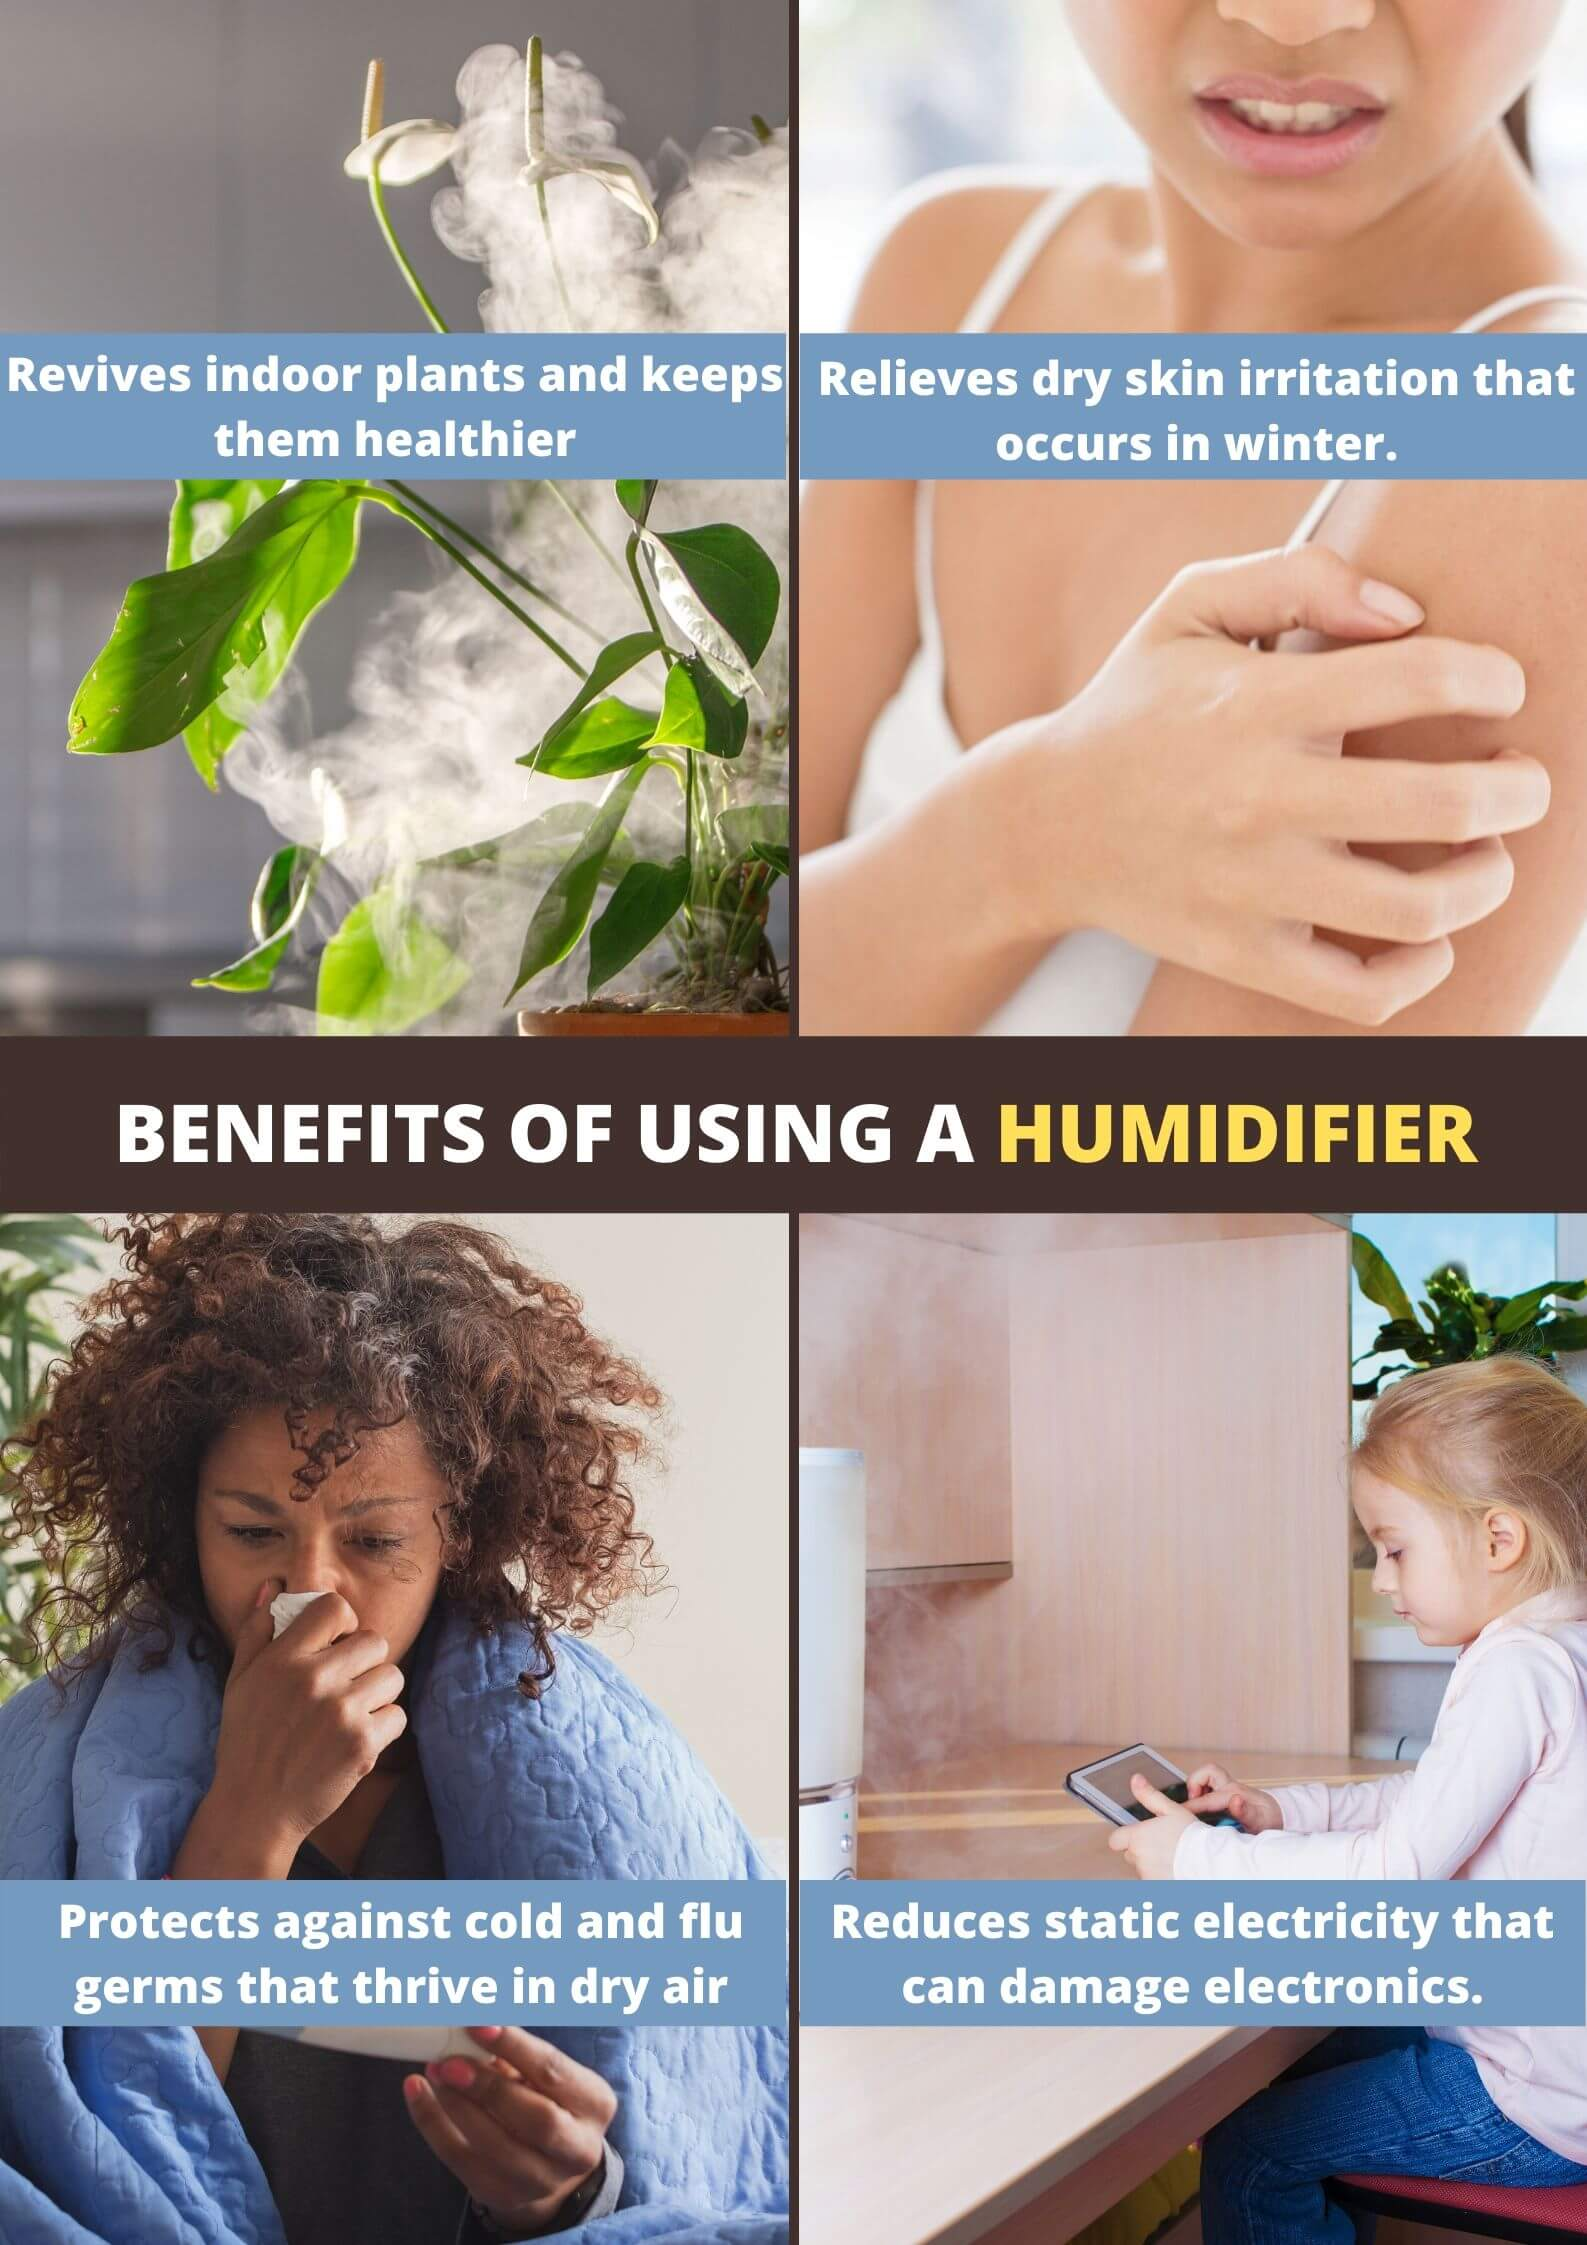 Advantages of a humidifier